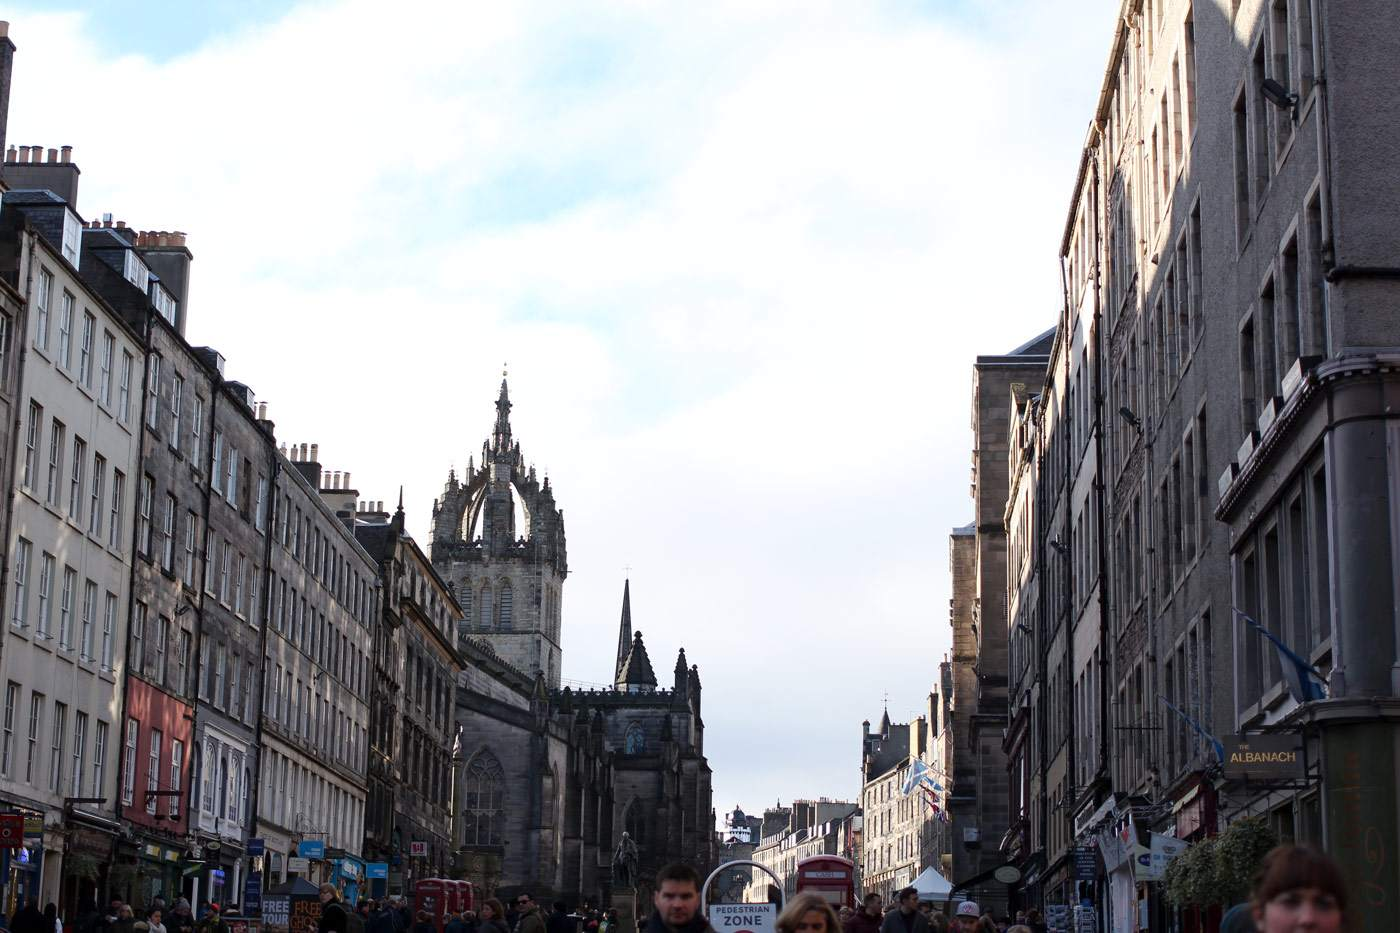 edinburgh-principal-george-st-hotel-12-hours-in-scotland-5